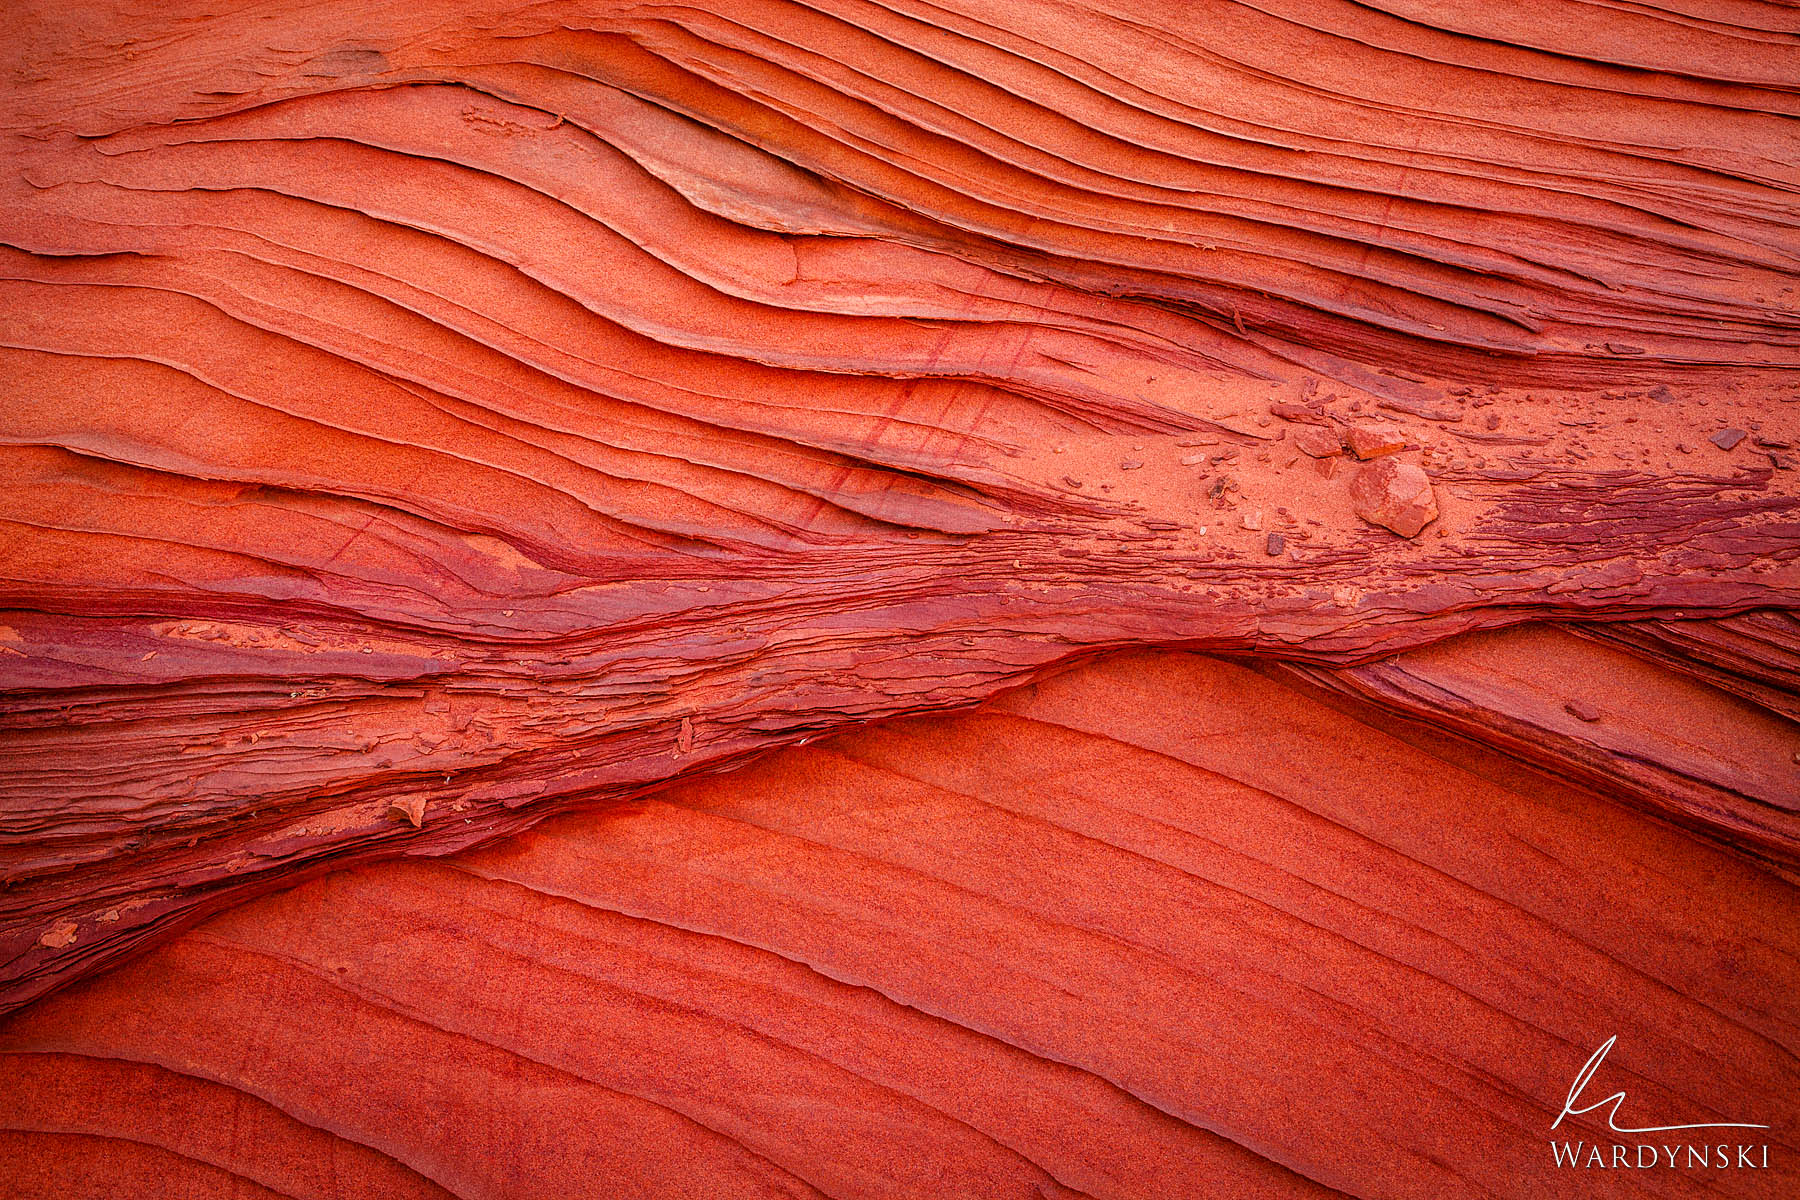 Fine Art Print of 25 | Limited Edition of 25  Paper thin fins protrude from the red sandstone of the Southwest. These sandstone...